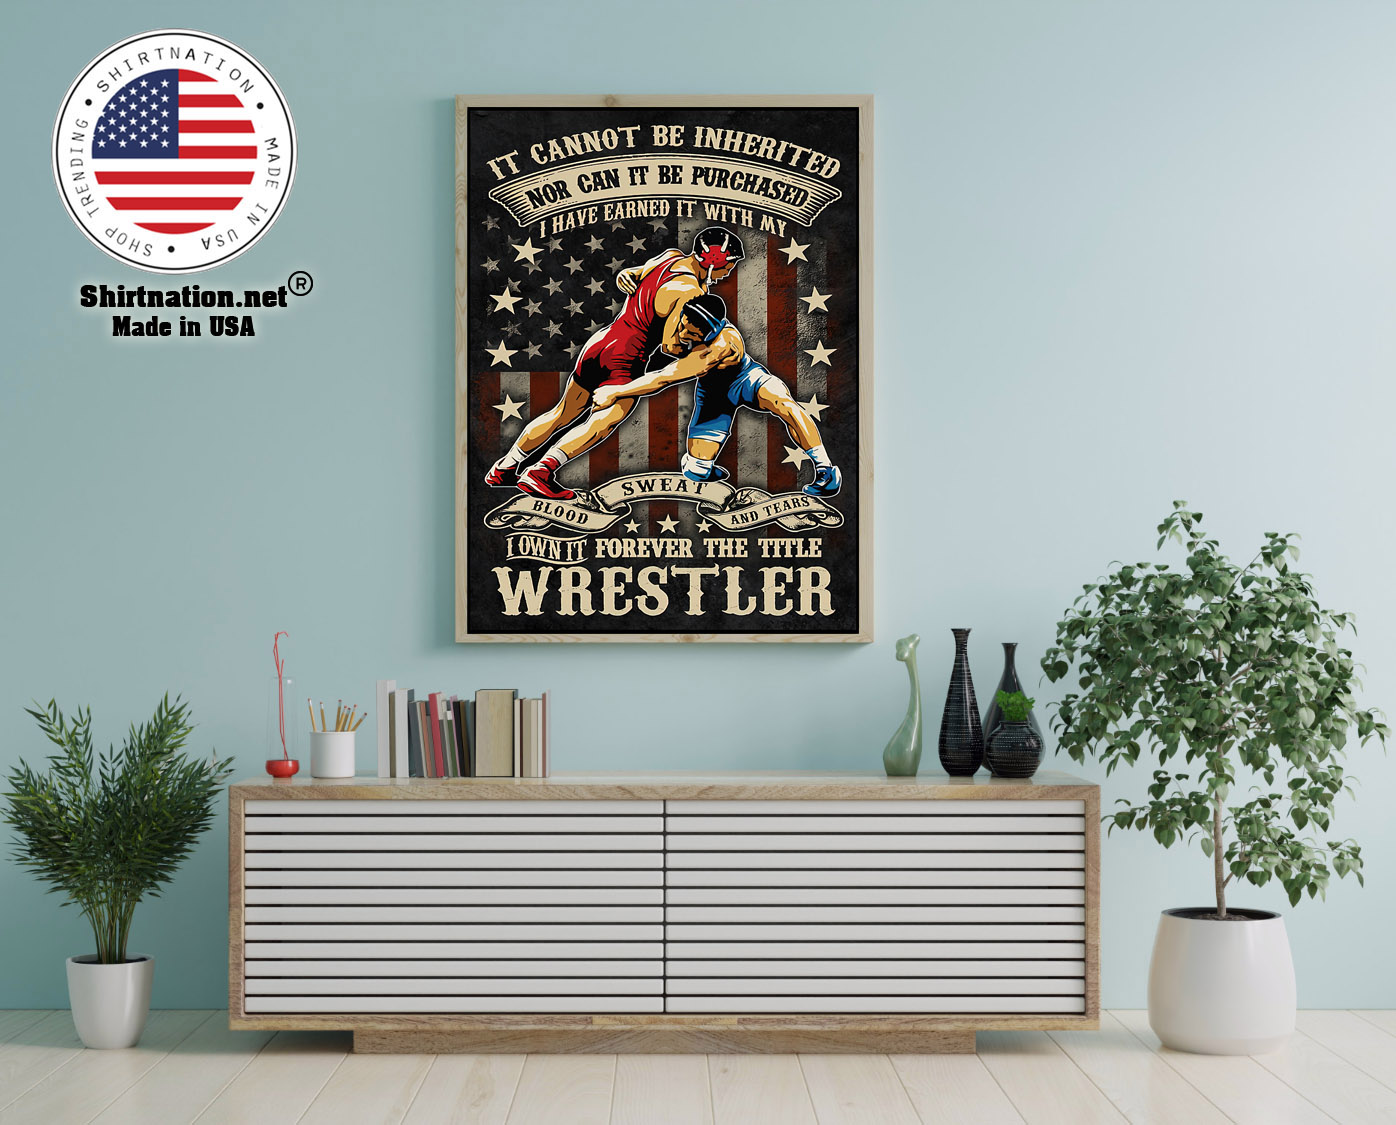 Wrestling it cannot be inherited nor can it be purchased poster 12